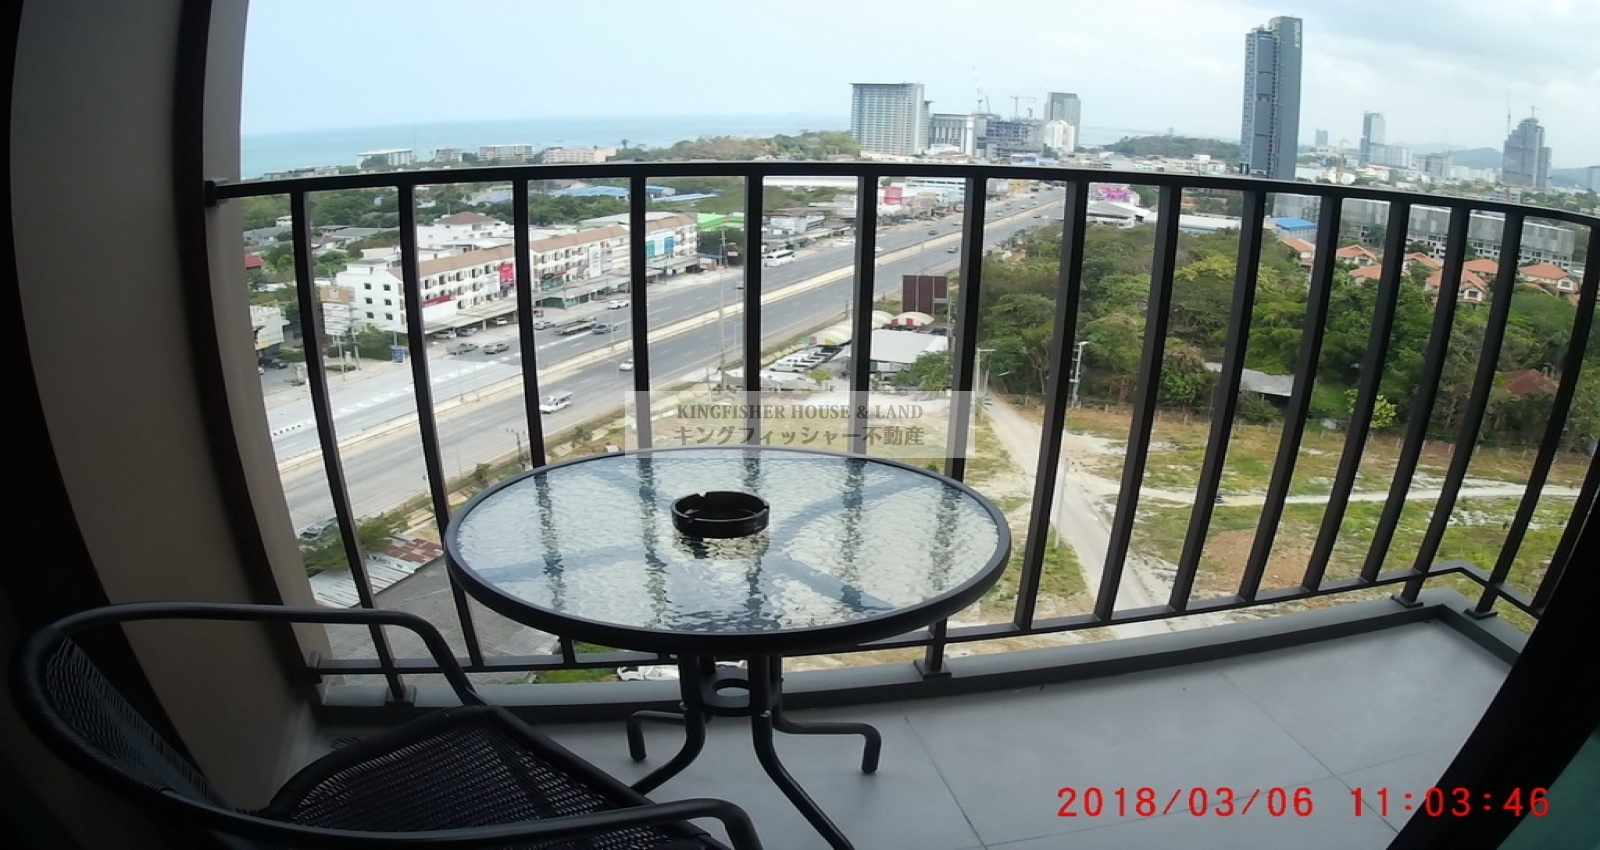 1 Bedrooms, Condominium, For Rent, 1 Bathrooms, Listing ID 1219, Sriracha, Thailand, 20110,